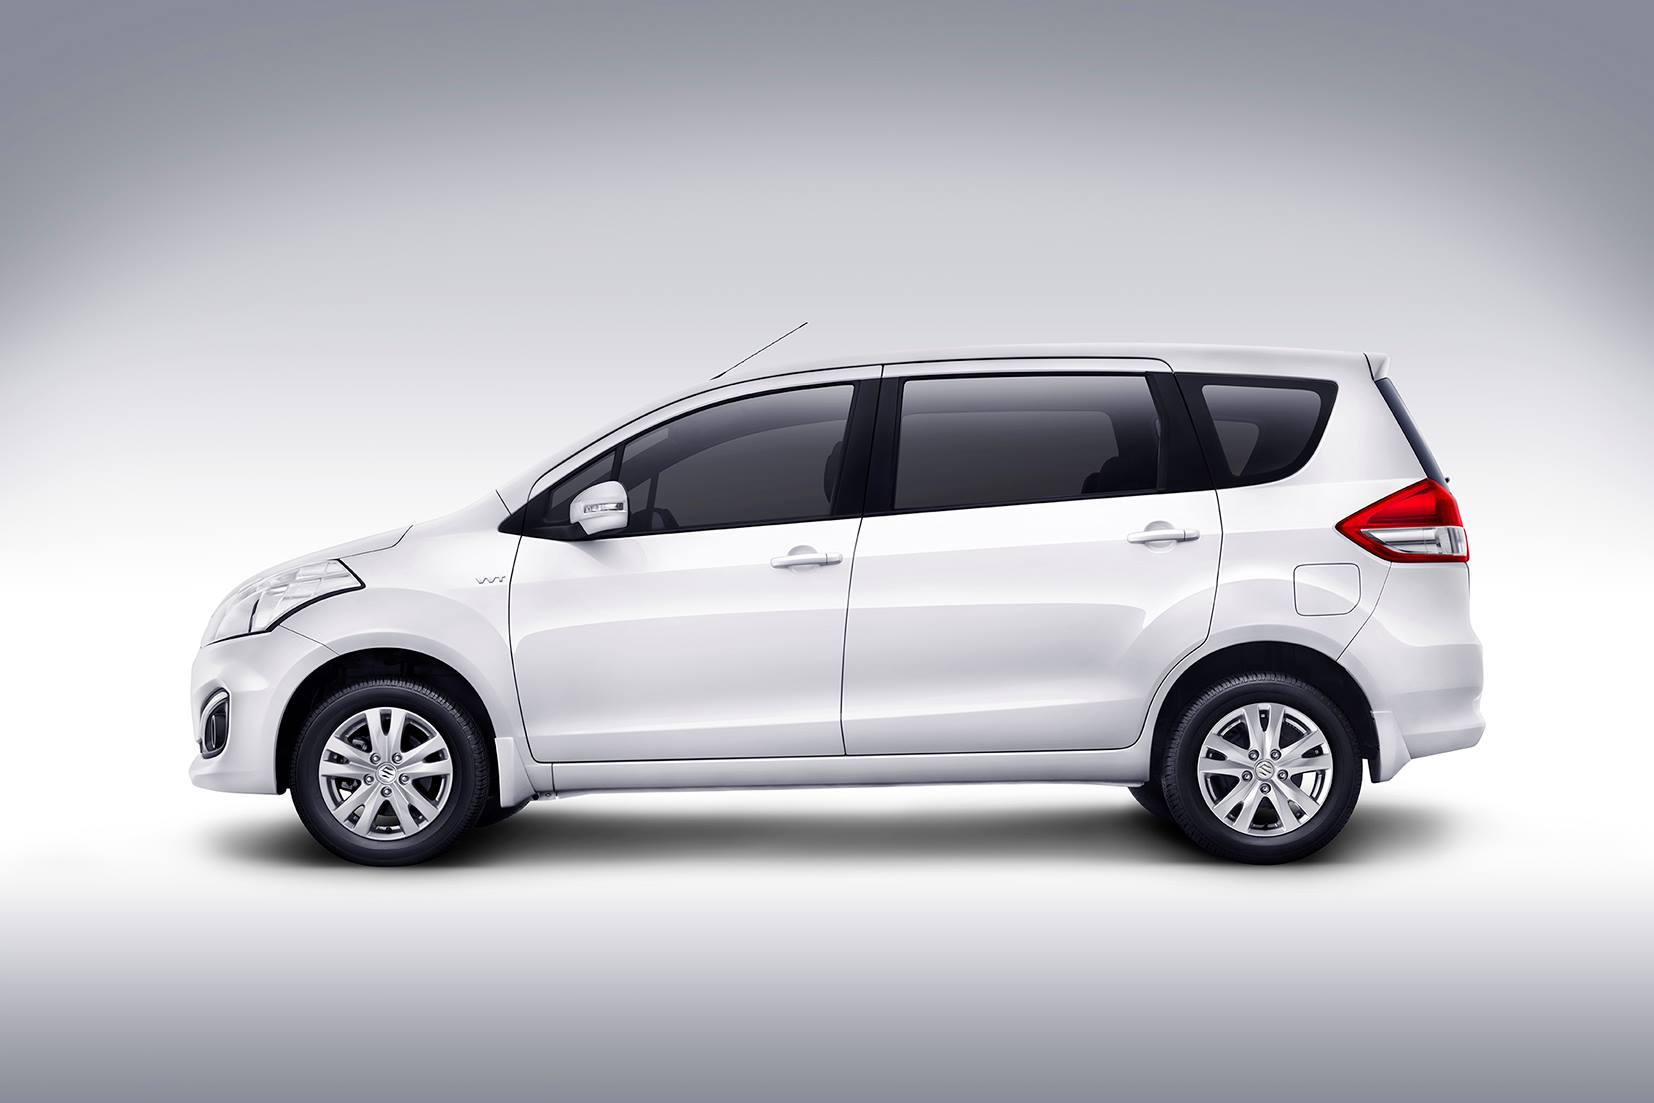 2015 Maruti Ertiga Facelift has been launched in India